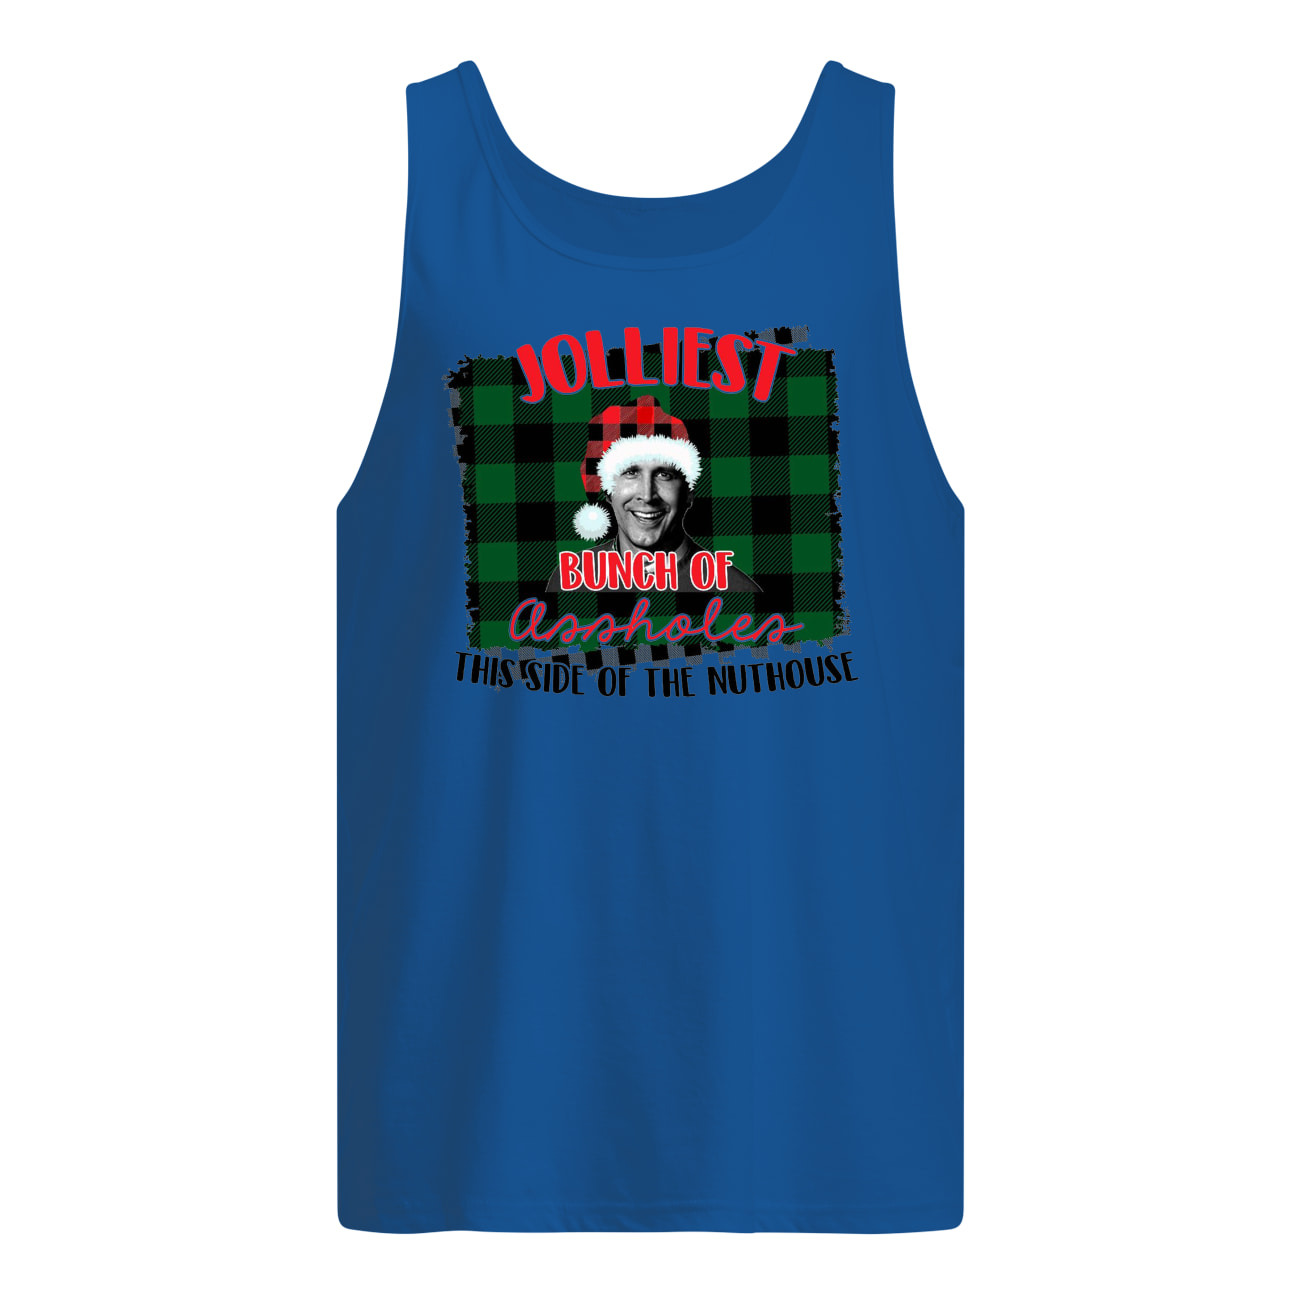 Jolliest bunch of assholes this side of the nuthouse national lampoon's christmas vacation tank top